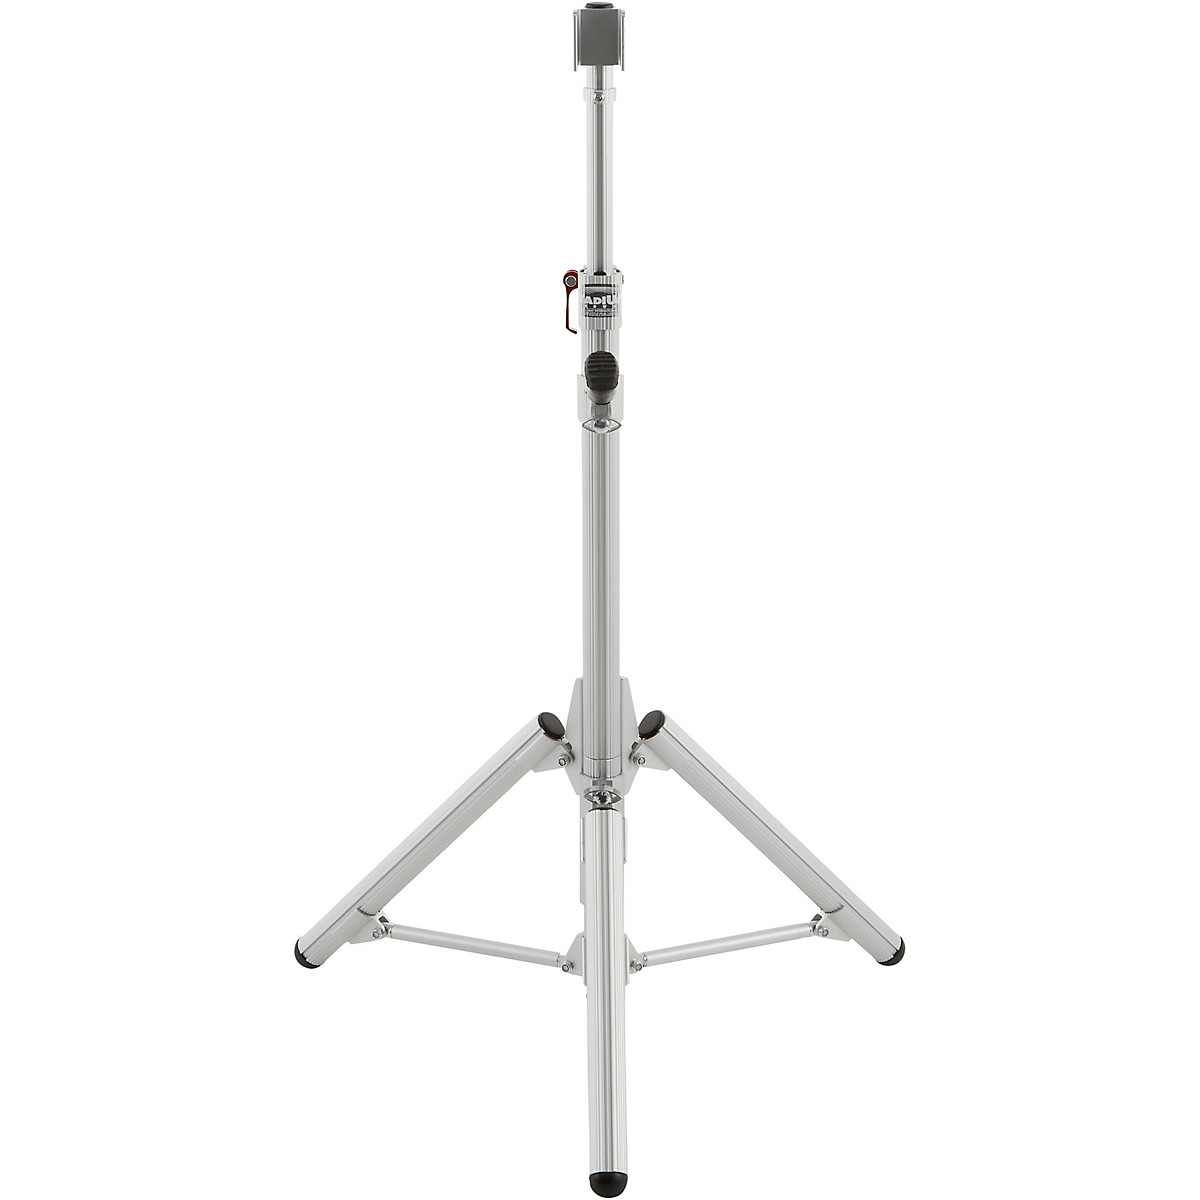 Randall May International RM-SHSA-MR AIRlift Stadium Hardware Marching Snare Stand